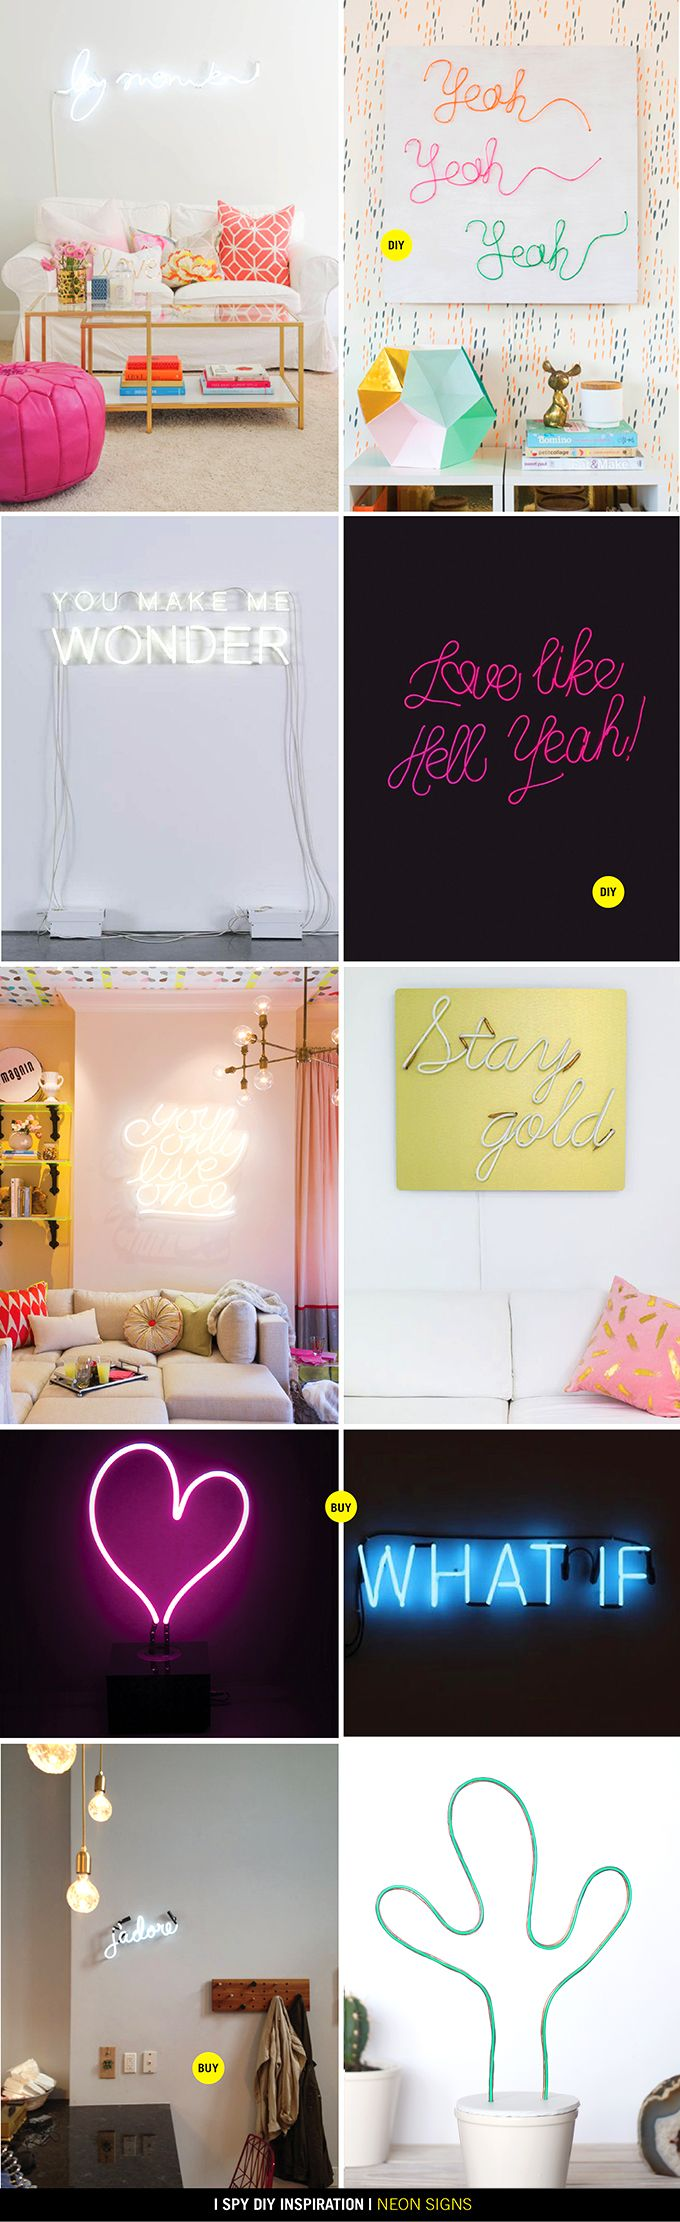 DIY INSPIRATION | Neon Signs                                                                                                                                                                                 More